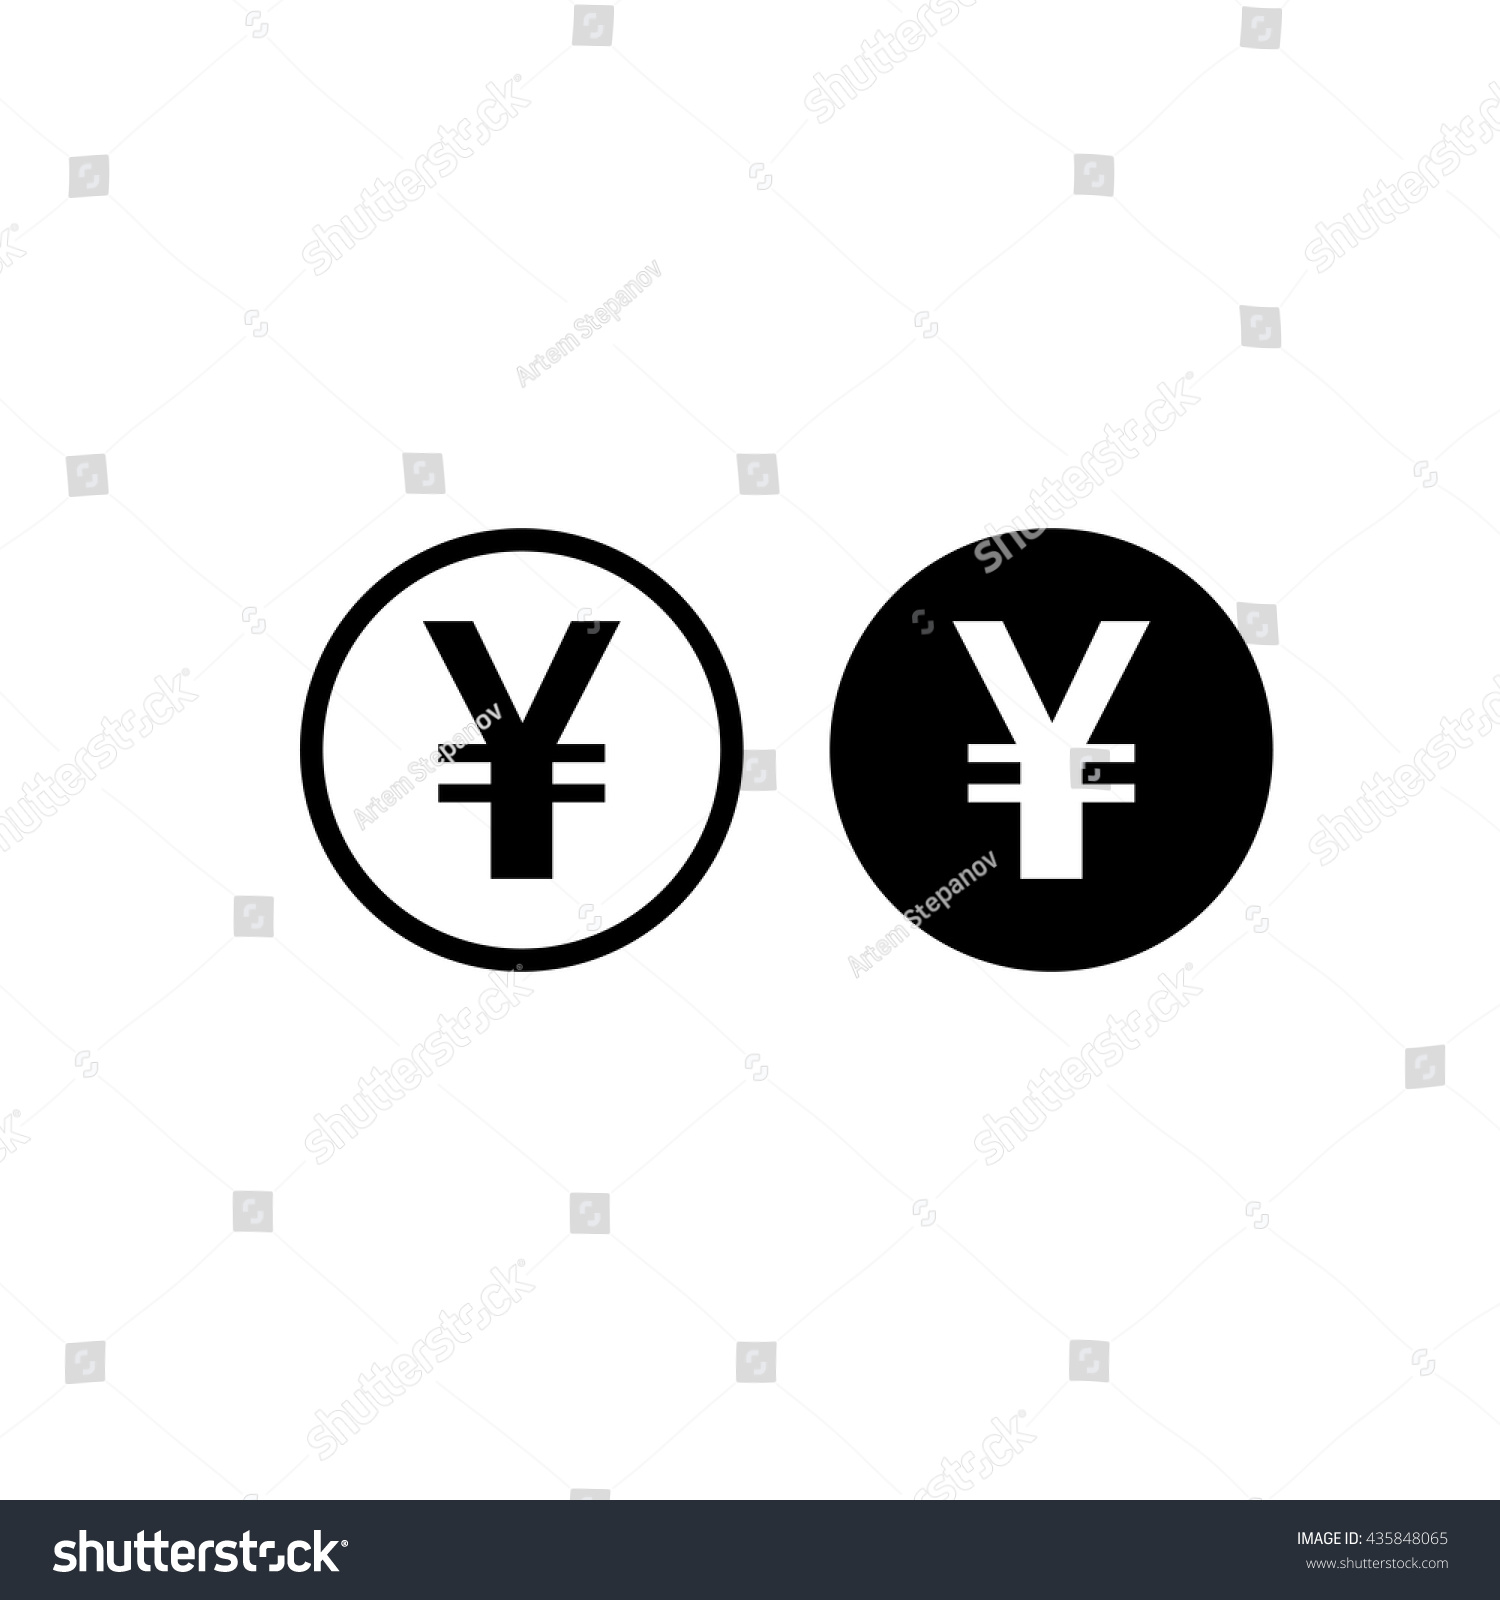 Japanese yen chinese yuan currency symbol stock vector 435848065 japanese yen or chinese yuan currency symbol flat icon for apps and websites biocorpaavc